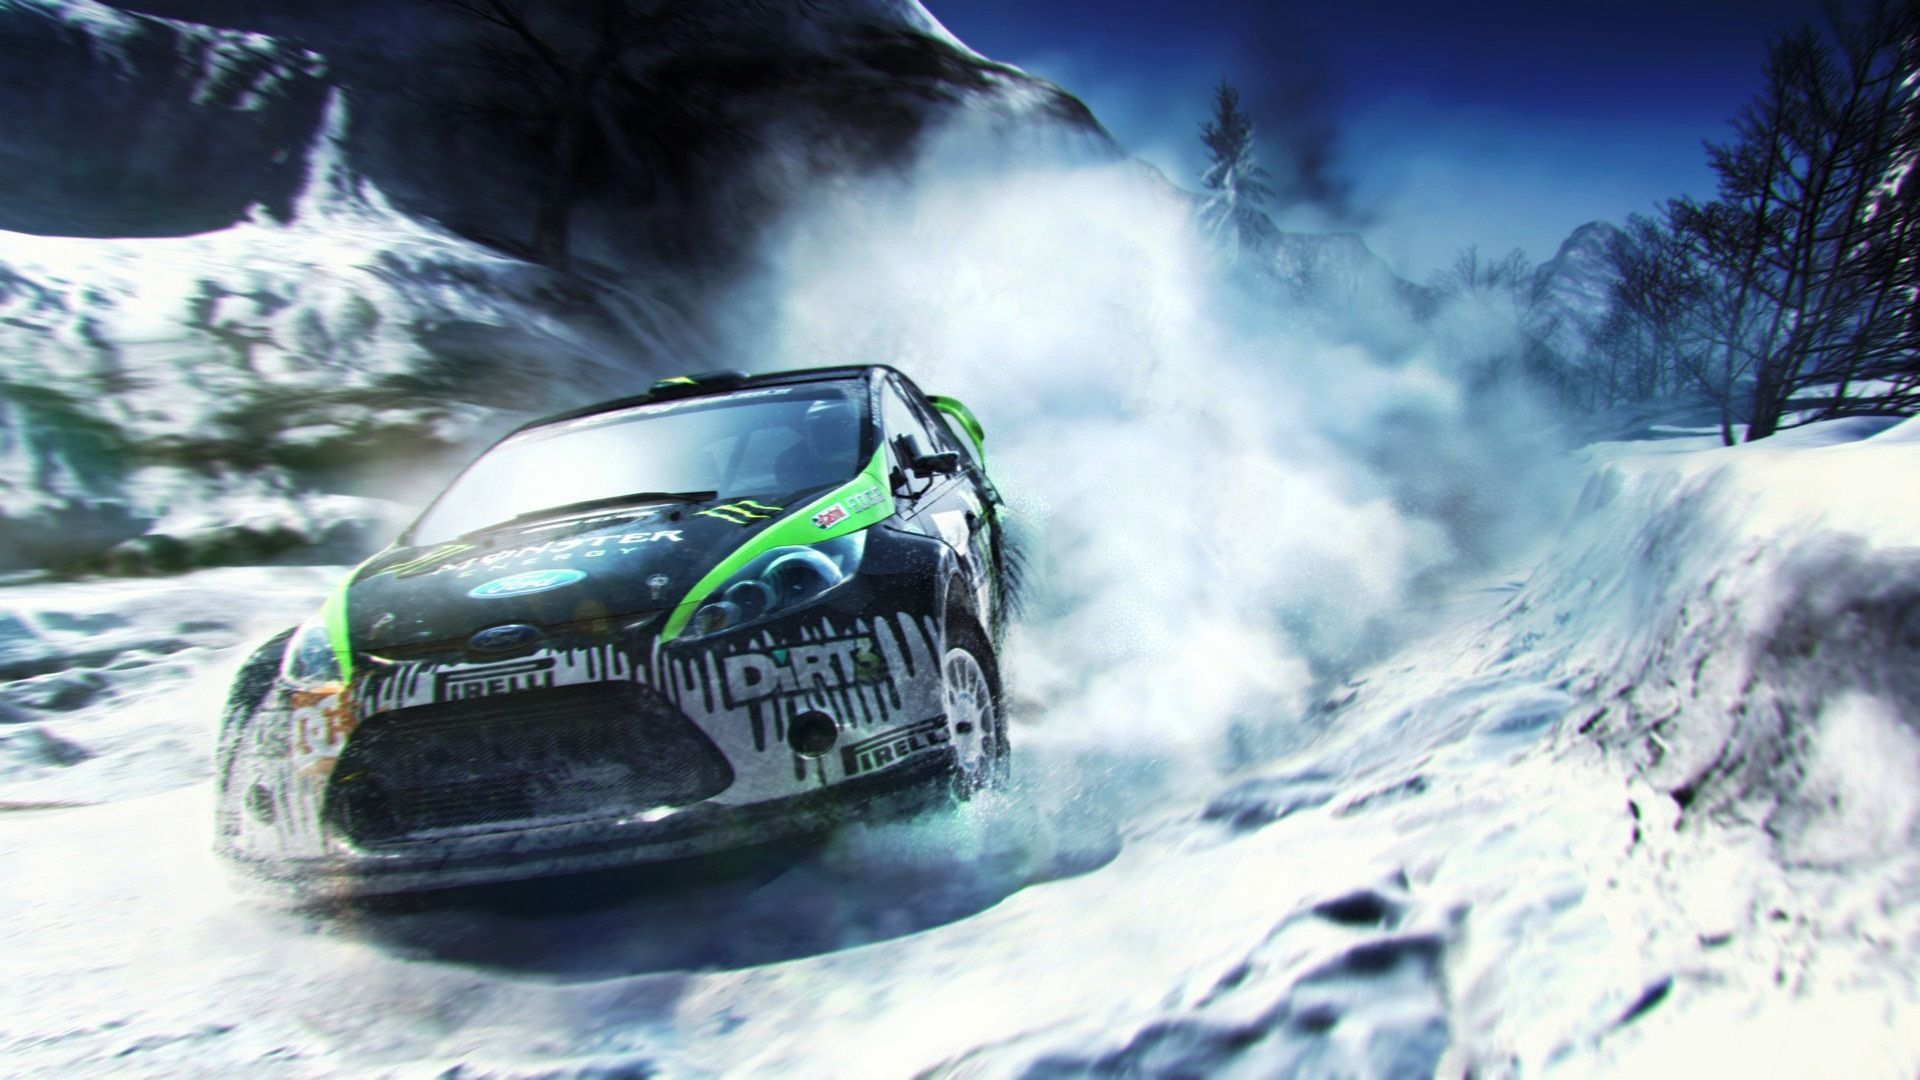 Rally Car Snow Hd Hd 1080p Wallpapers Download Cool Sports Cars Sports Car Wallpaper Hd Car Wallpapers